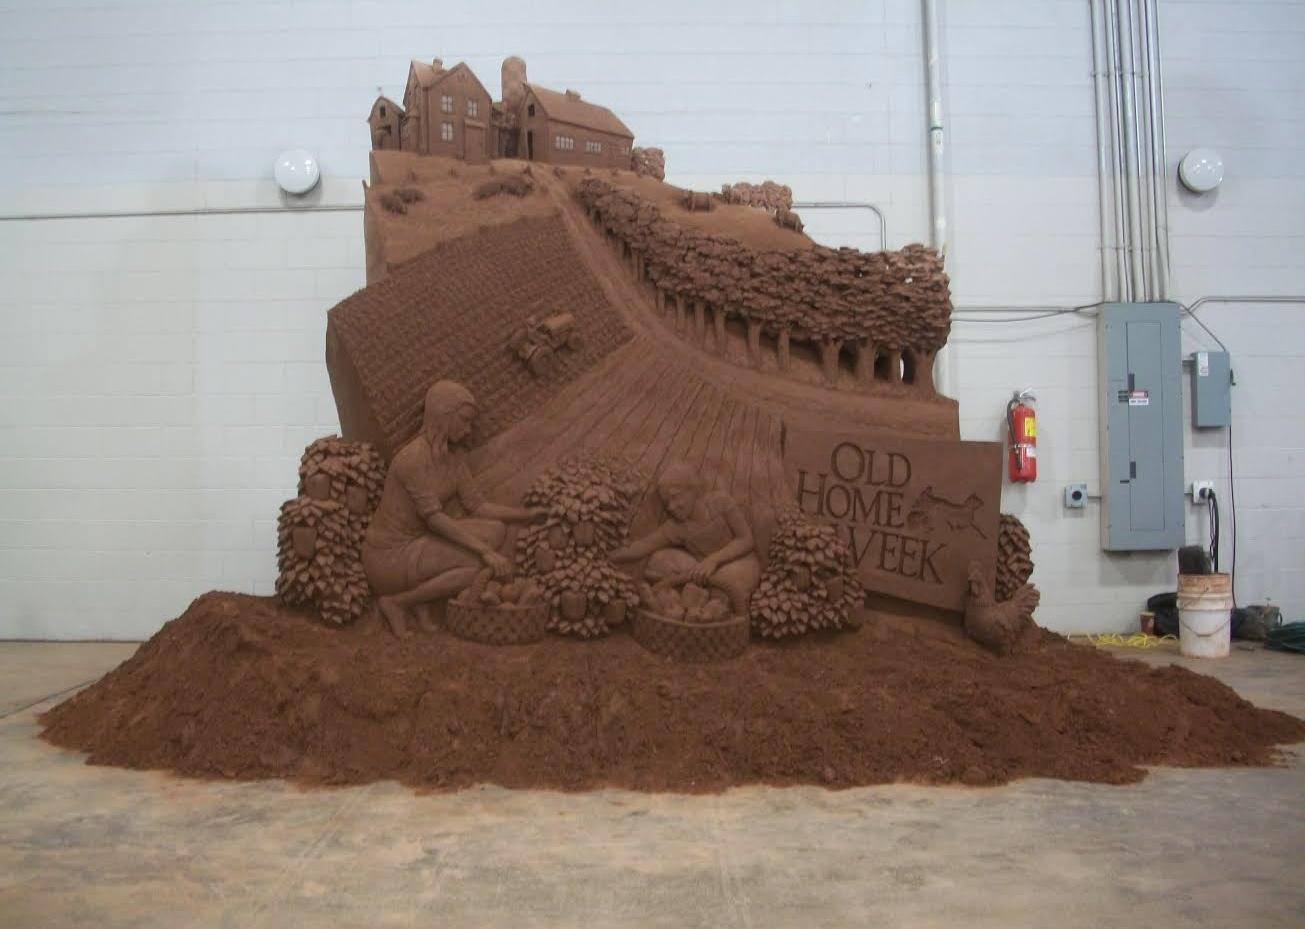 Sand Sculpture artists